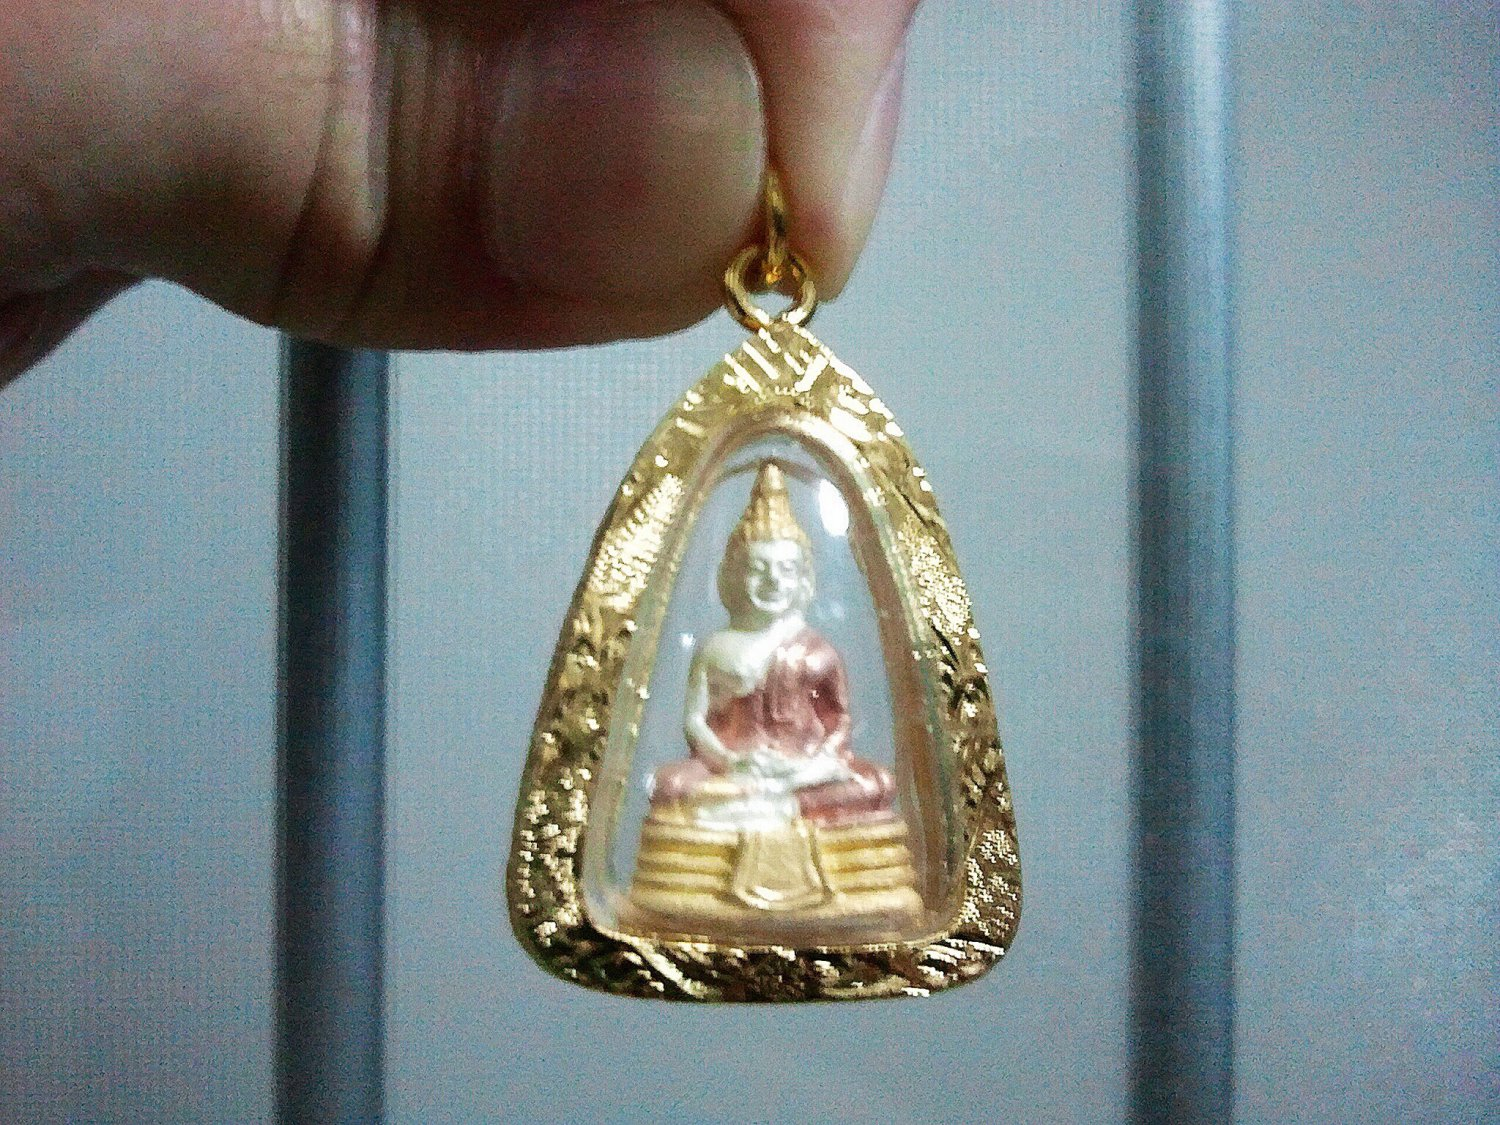 Thai Amulet Sothon Buddha Gold Plated Pendant (1543 edition)